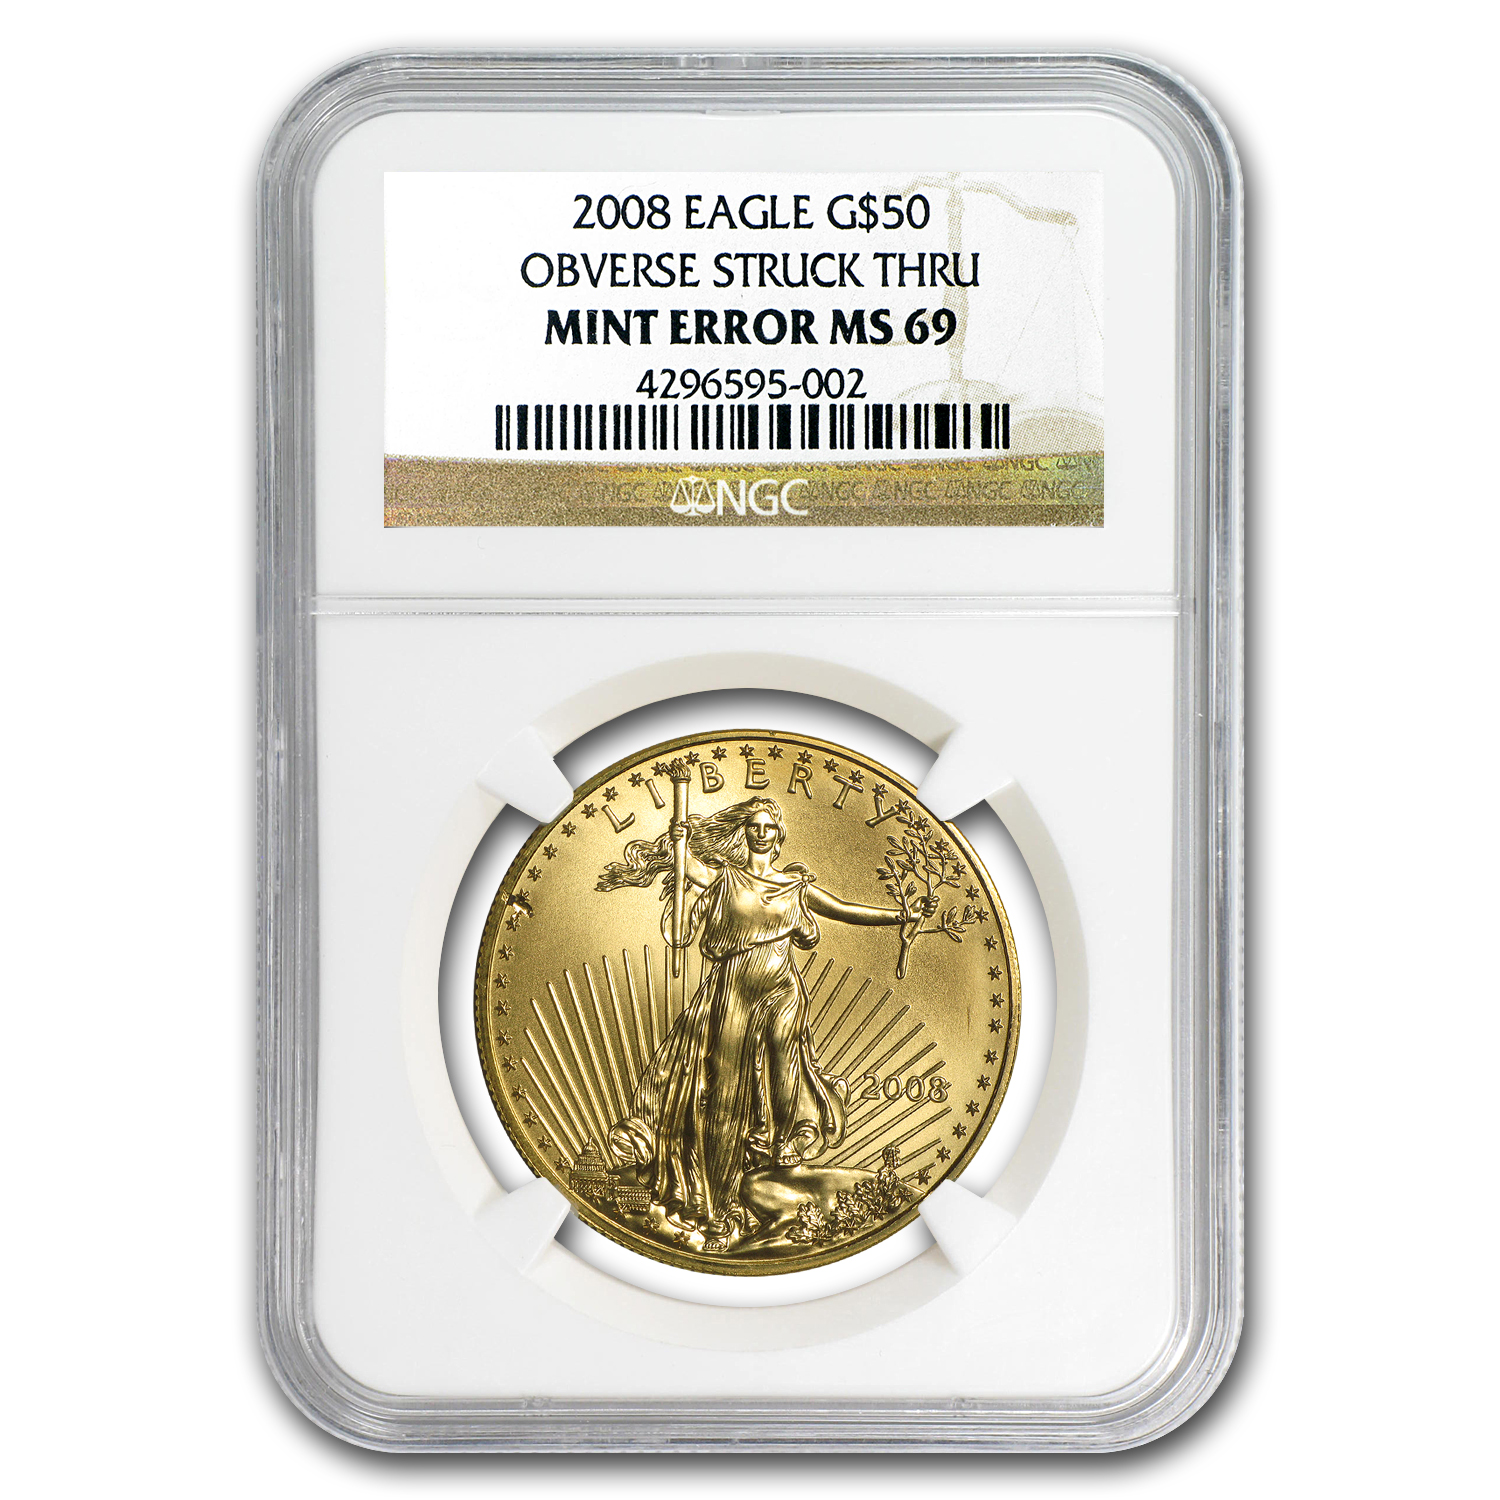 2008 1 oz Gold American Eagle Mint Error NGC MS-69